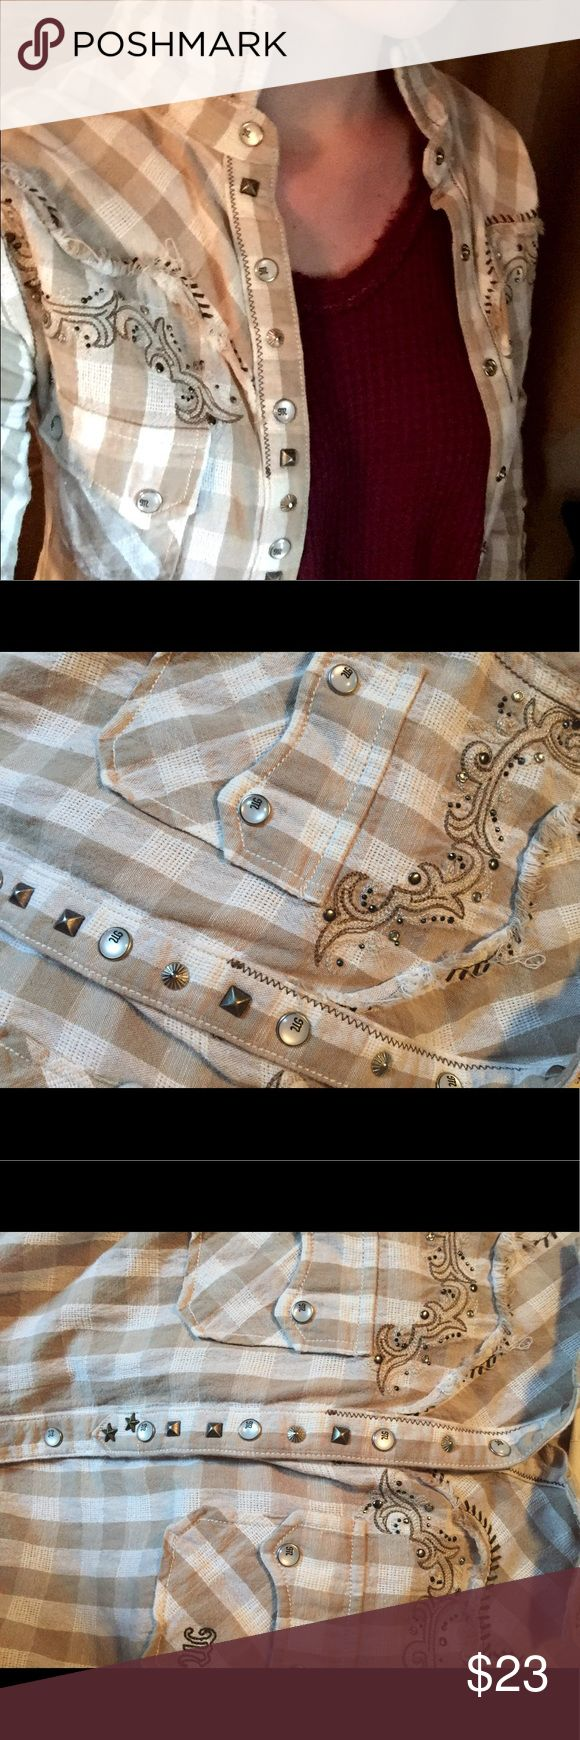 NWOT Miss Me Button Down Top Miss Me brand glam button down with stones and other embellishments, cute country style never worn, perfect condition Miss Me Tops Button Down Shirts